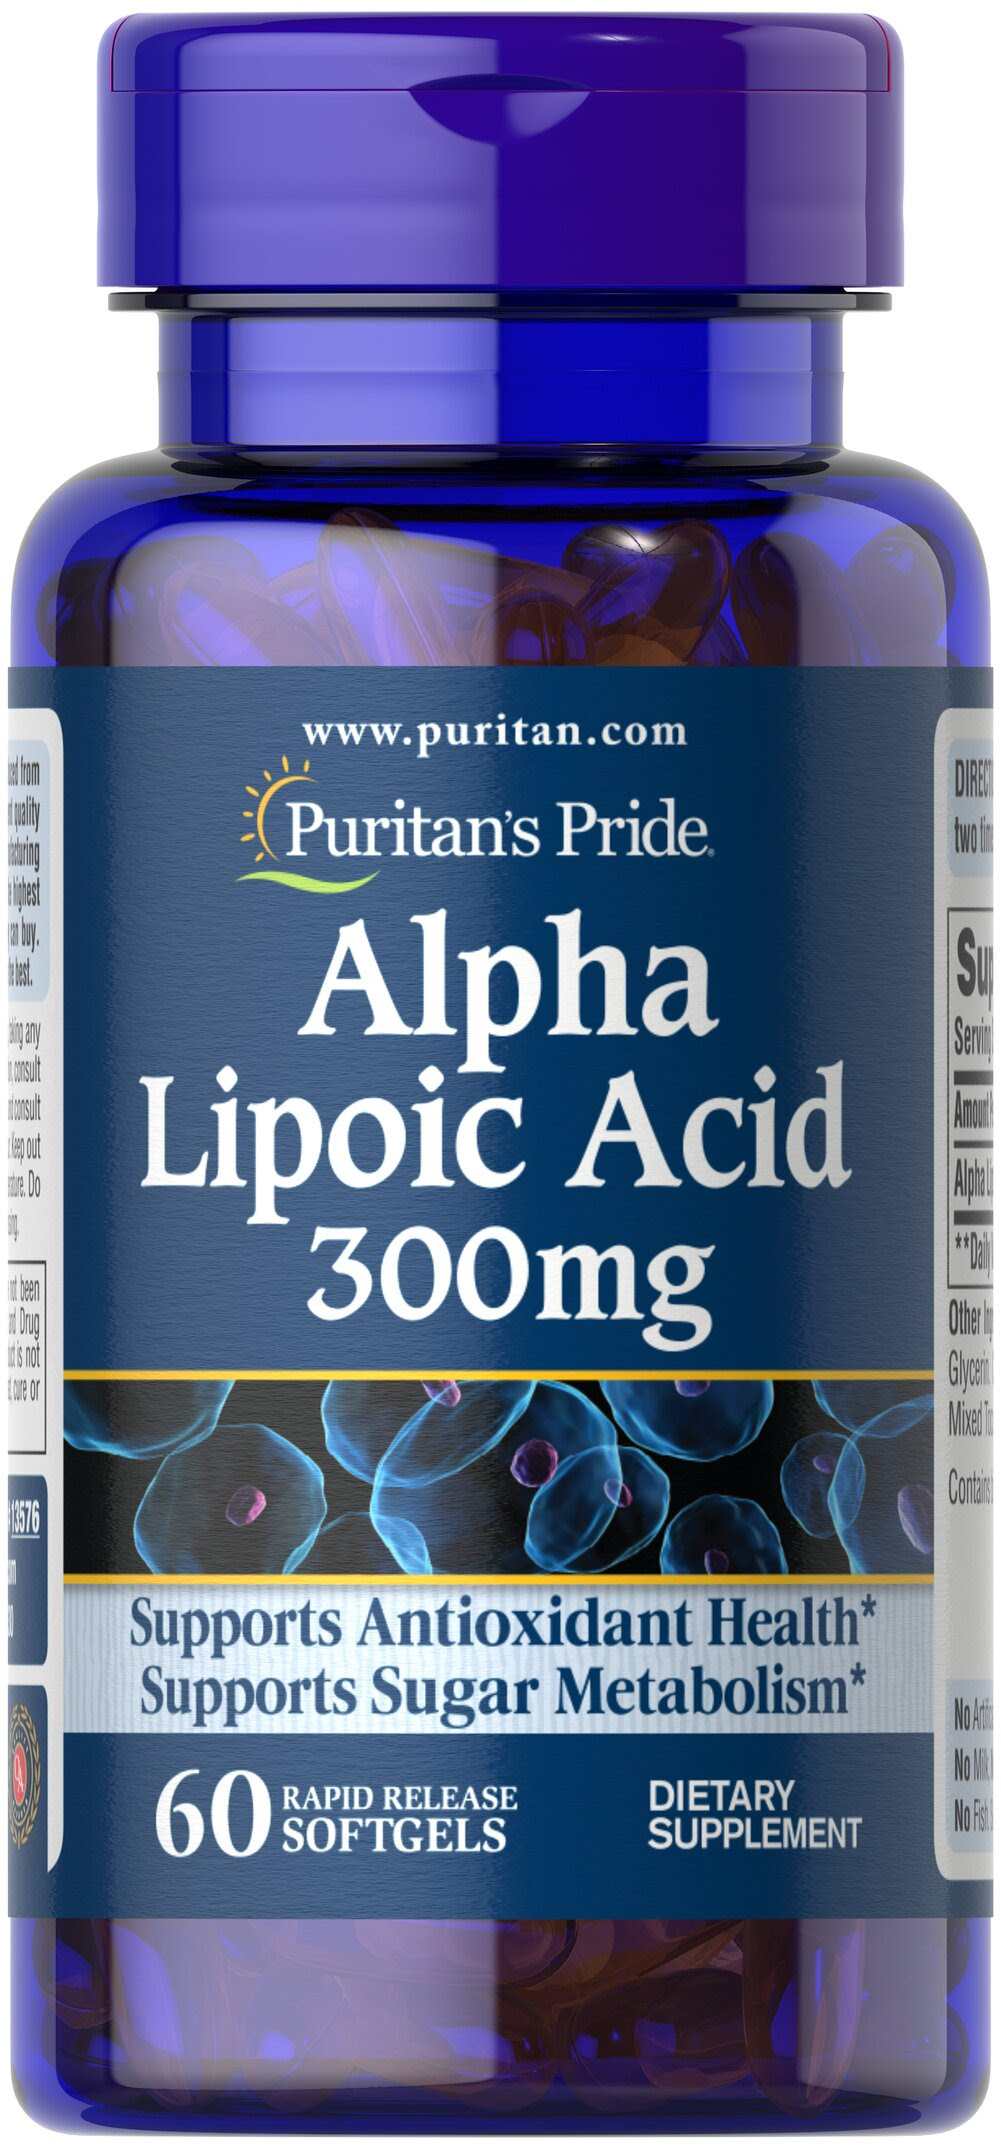 """Alpha Lipoic Acid 300 mg <p>Alpha Lipoic Acid (ALA) helps metabolize sugar, especially in muscles, where it promotes energy.**</p><p>ALA is also beneficial for liver health, and helps to revitalize the underlying structure of the skin so it can look healthier and more radiant.**</p><p>ALA is often called the """"universal antioxidant"""" for its ability to help neutralize cell-damaging free radicals.** </p> 60 Softgels 300 mg $12.99"""